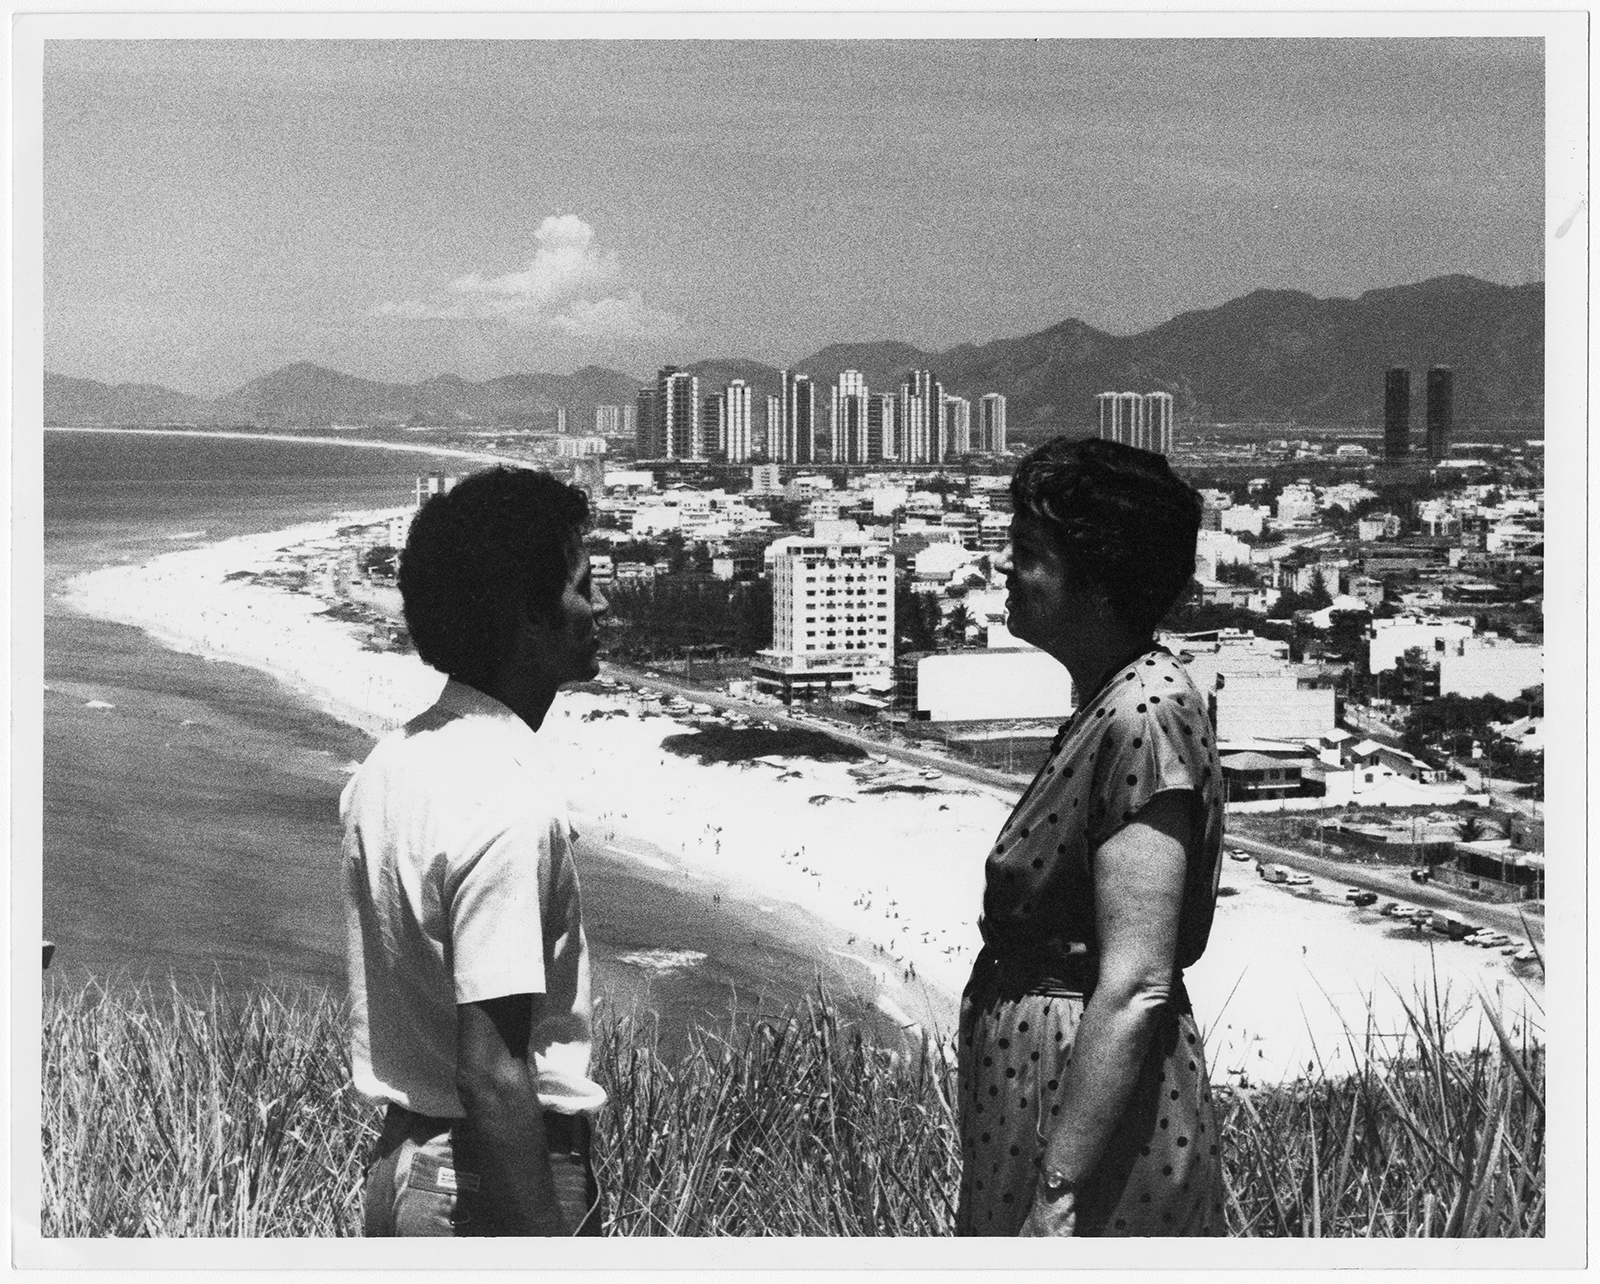 Brazilian seminary student Rui Cleber, left, and Southern Baptist missionary Elizabeth Oates stand on a hillside overlooking the Barra, a rapidly developing beachfront area where many of Rio de Janeiro's wealthiest people are seeking sanctuary from the city's traffic and noise, in 1980. Five Bible studies have been started, and plans are being made for a new church. RNS archive photo by Bob Harper. Photo courtesy of the Presbyterian Historical Society.